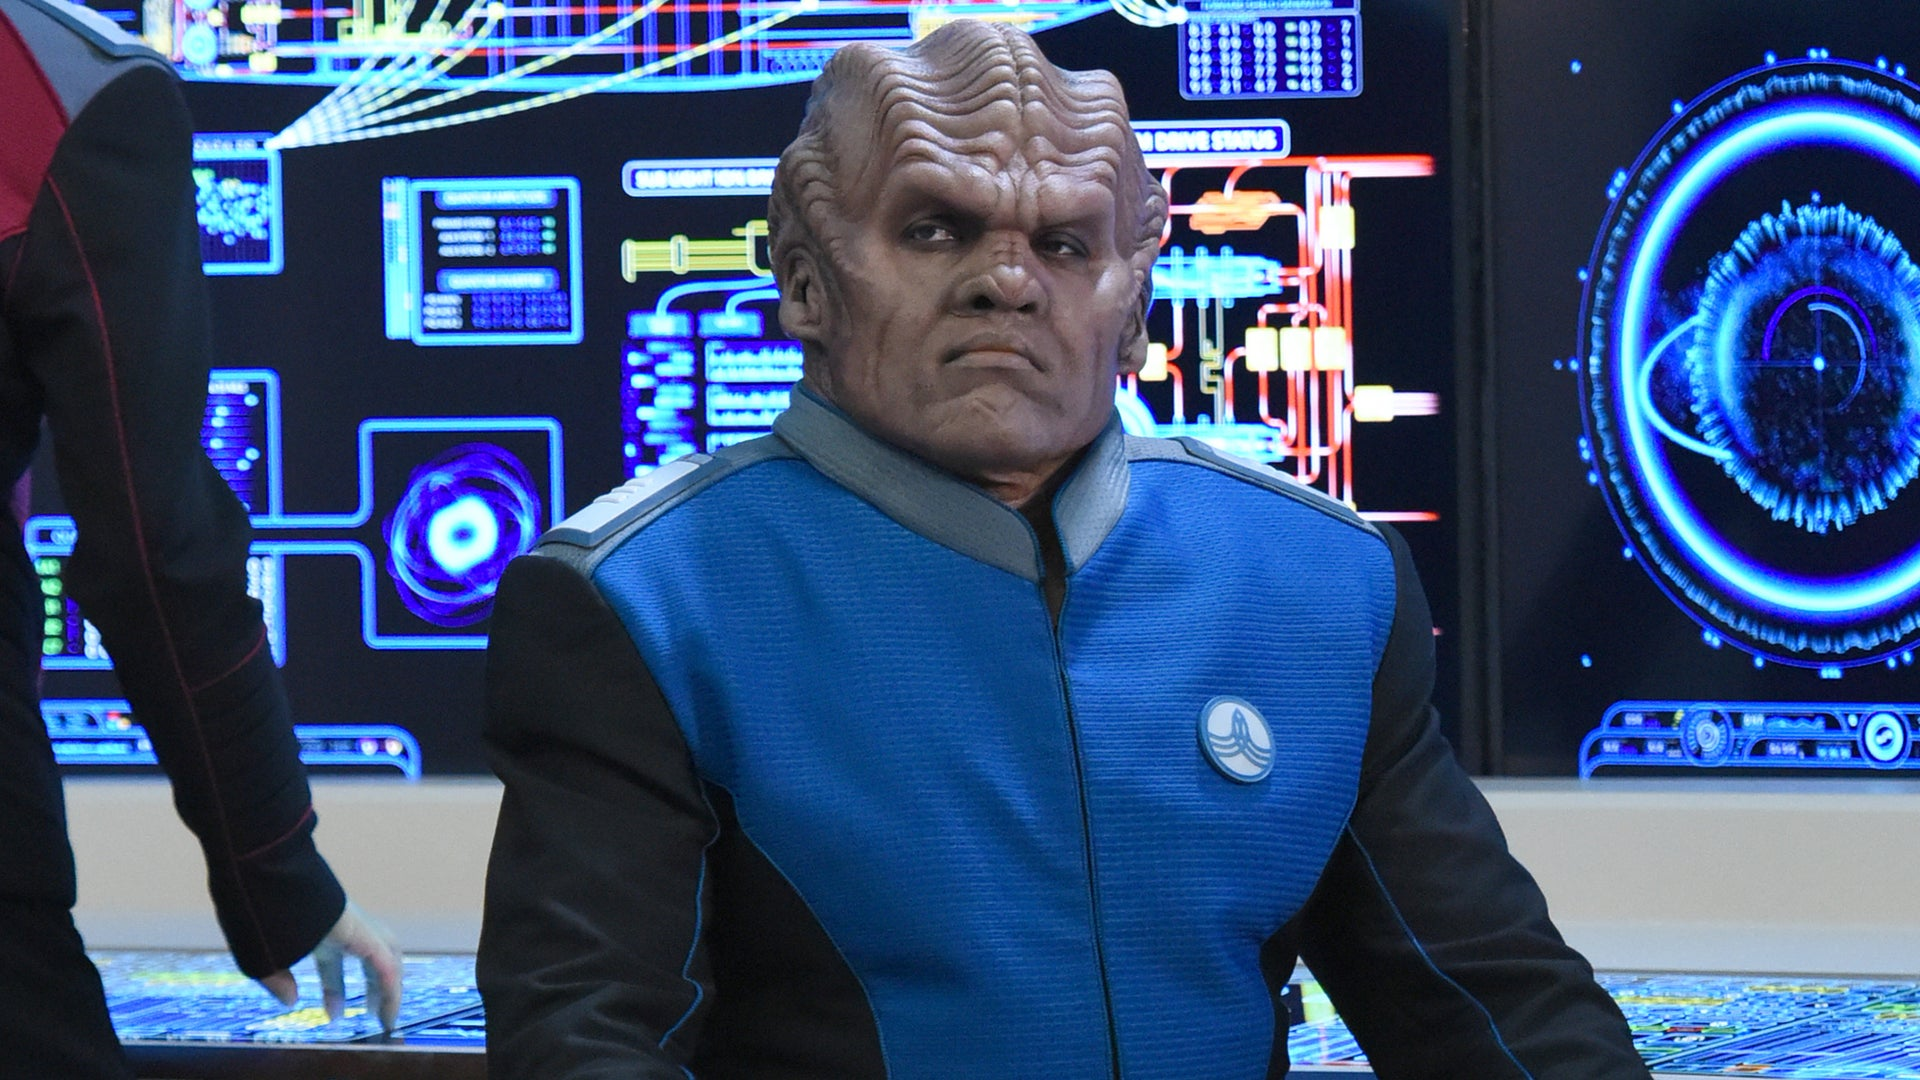 Peter Macon, The Orville